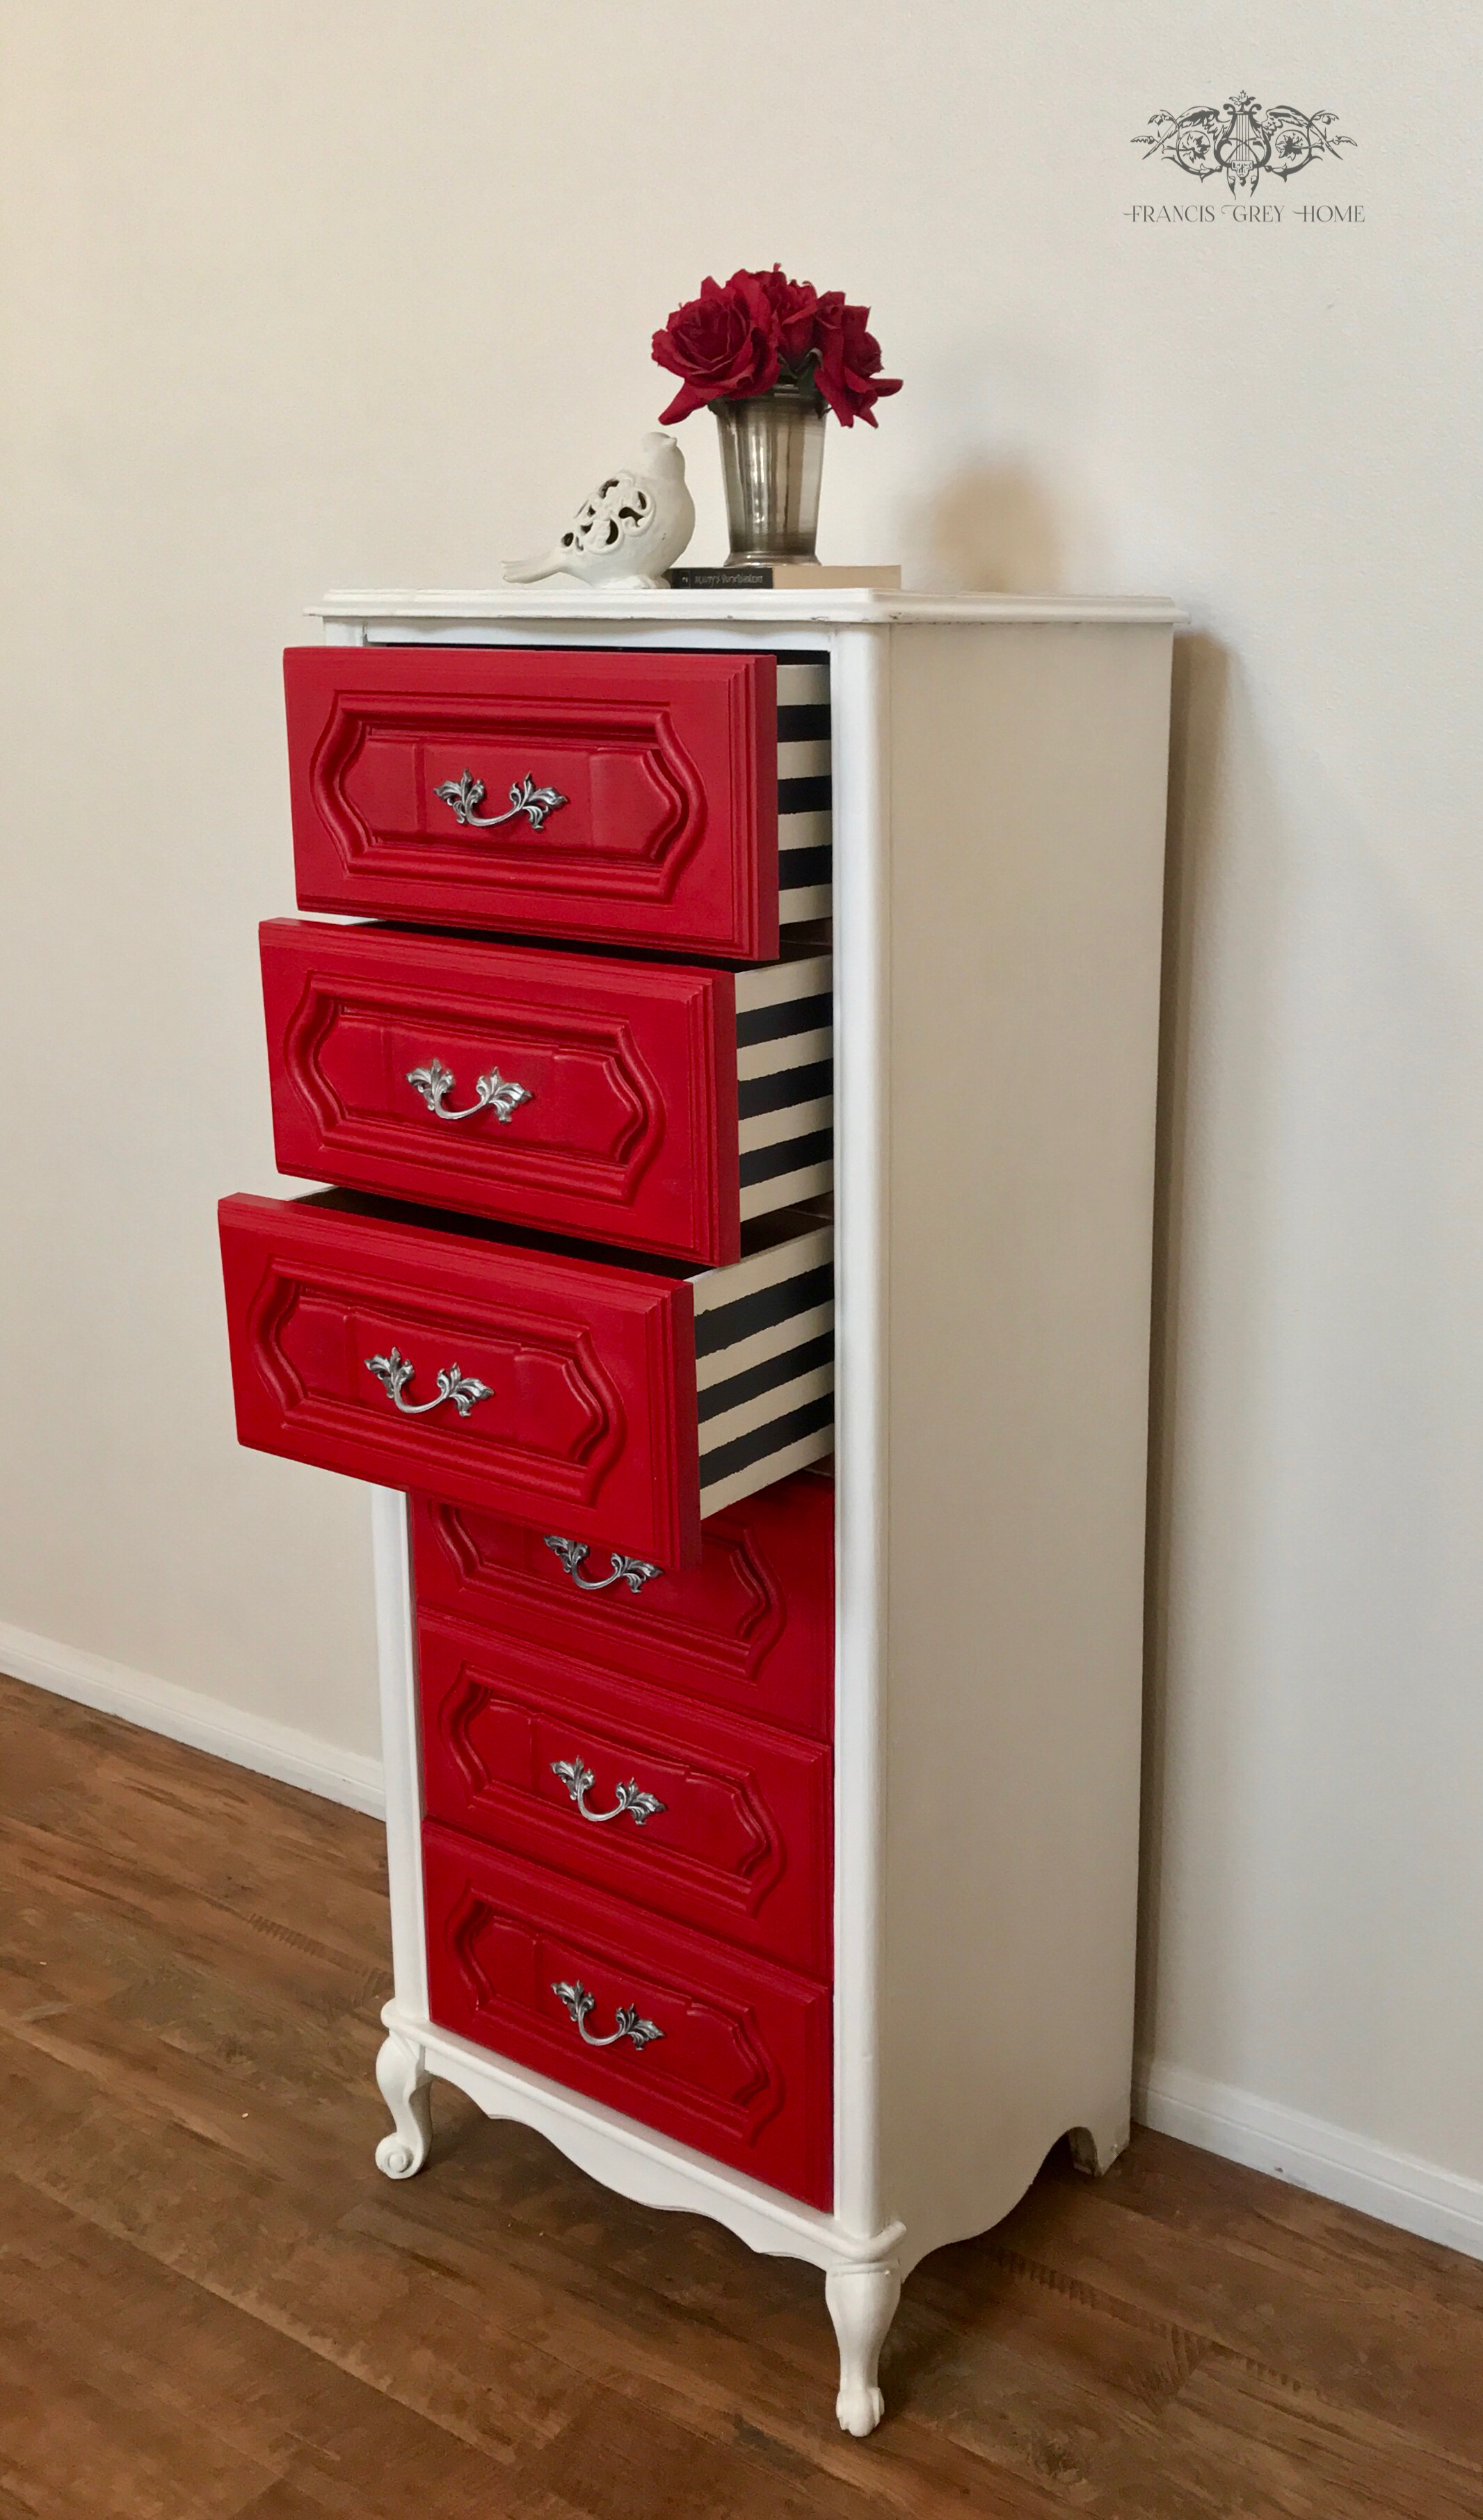 handle pdp it at main grey buylittle lewis drawer home wooden narrow matt white john rsp gloss mix little chest dresser